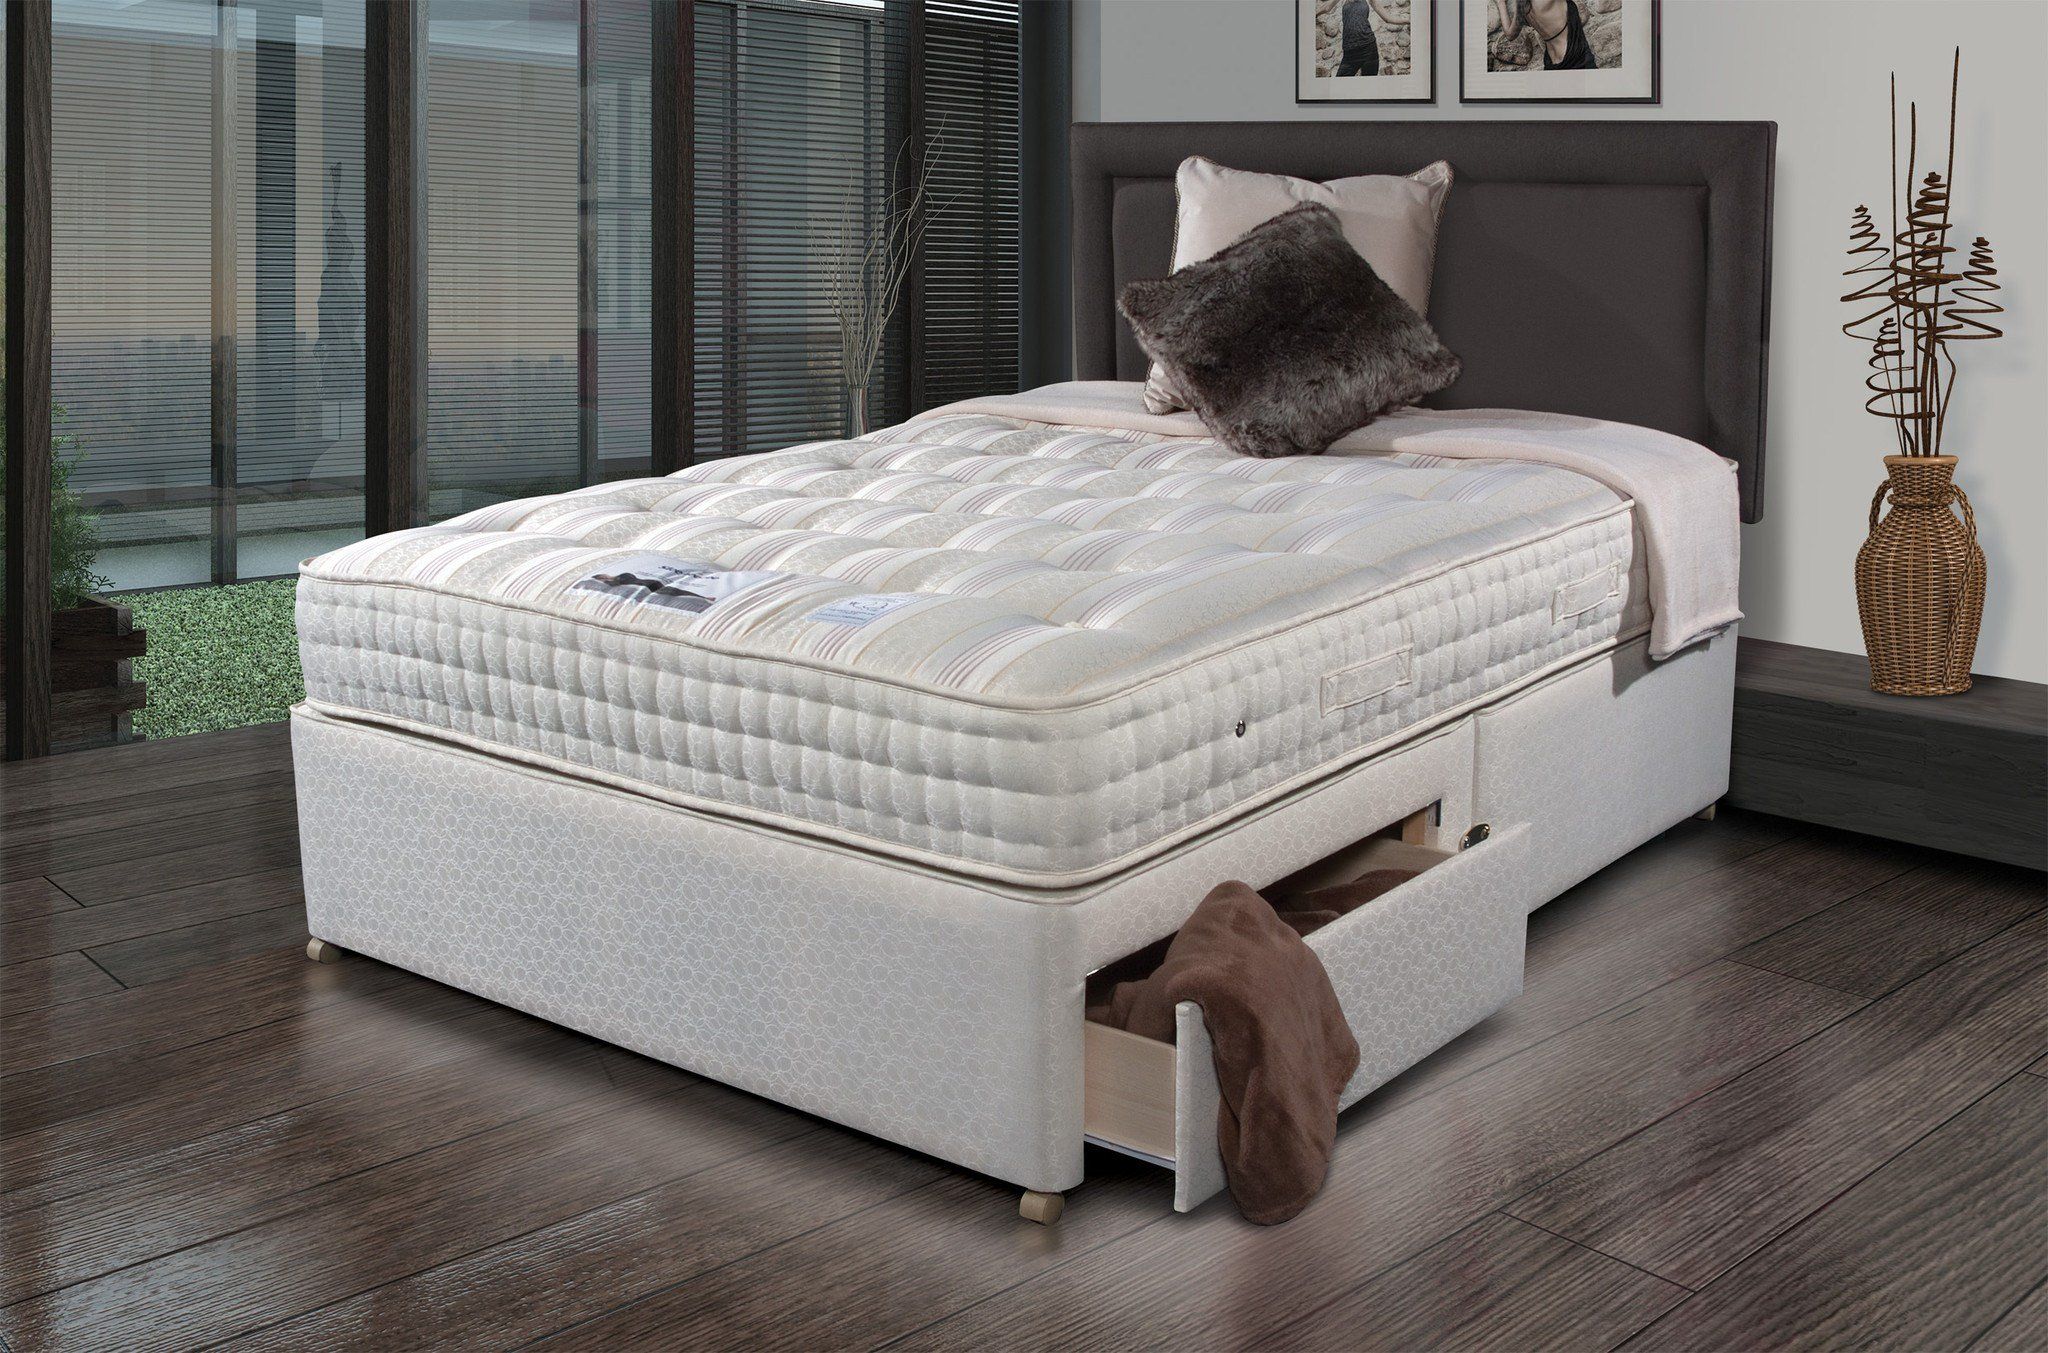 Sleepeezee new backcare luxury 1400 divan set online bed for New single divan beds